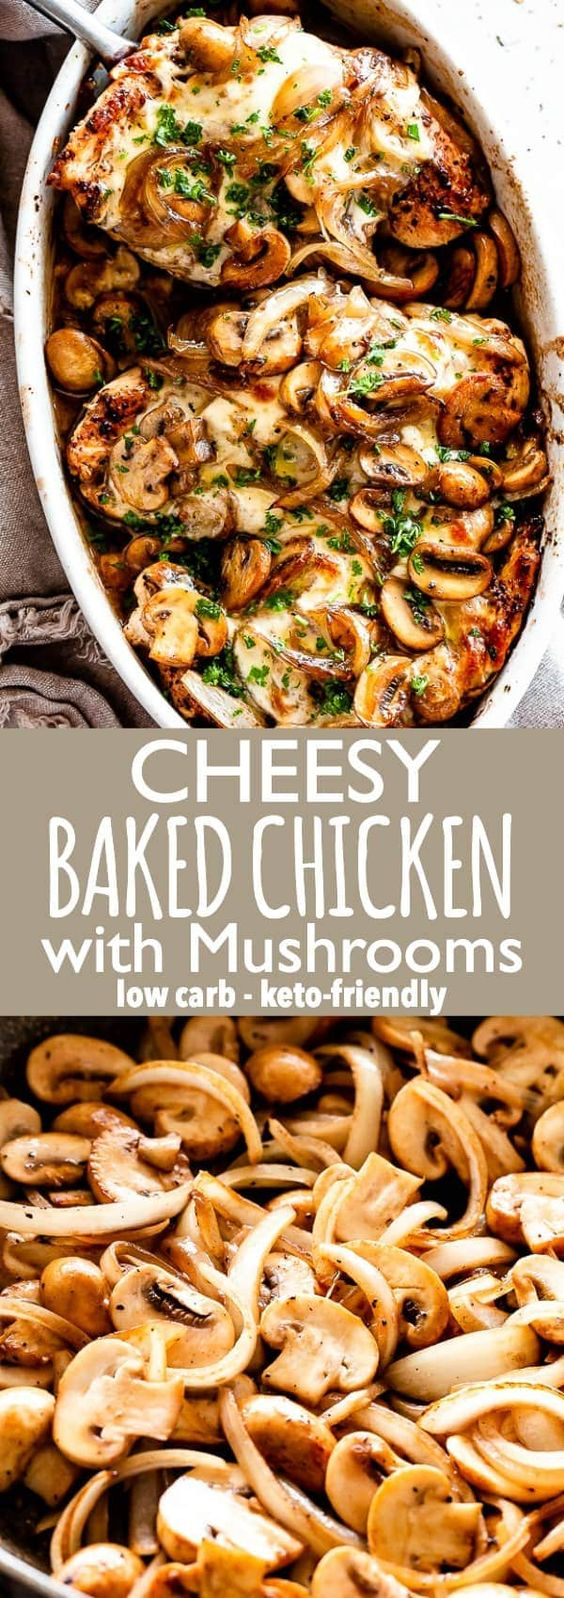 Cheesy Baked Chicken with Mushrooms - An easy recipe for baked chicken breasts covered in melty mozzarella cheese and layered with deliciously caramelized mushrooms. This effortless chicken dish is a great dinner for any night of the week. #bakedchicken #chickenrecipes #mushrooms #cheese #lowcarb #ketorecipes